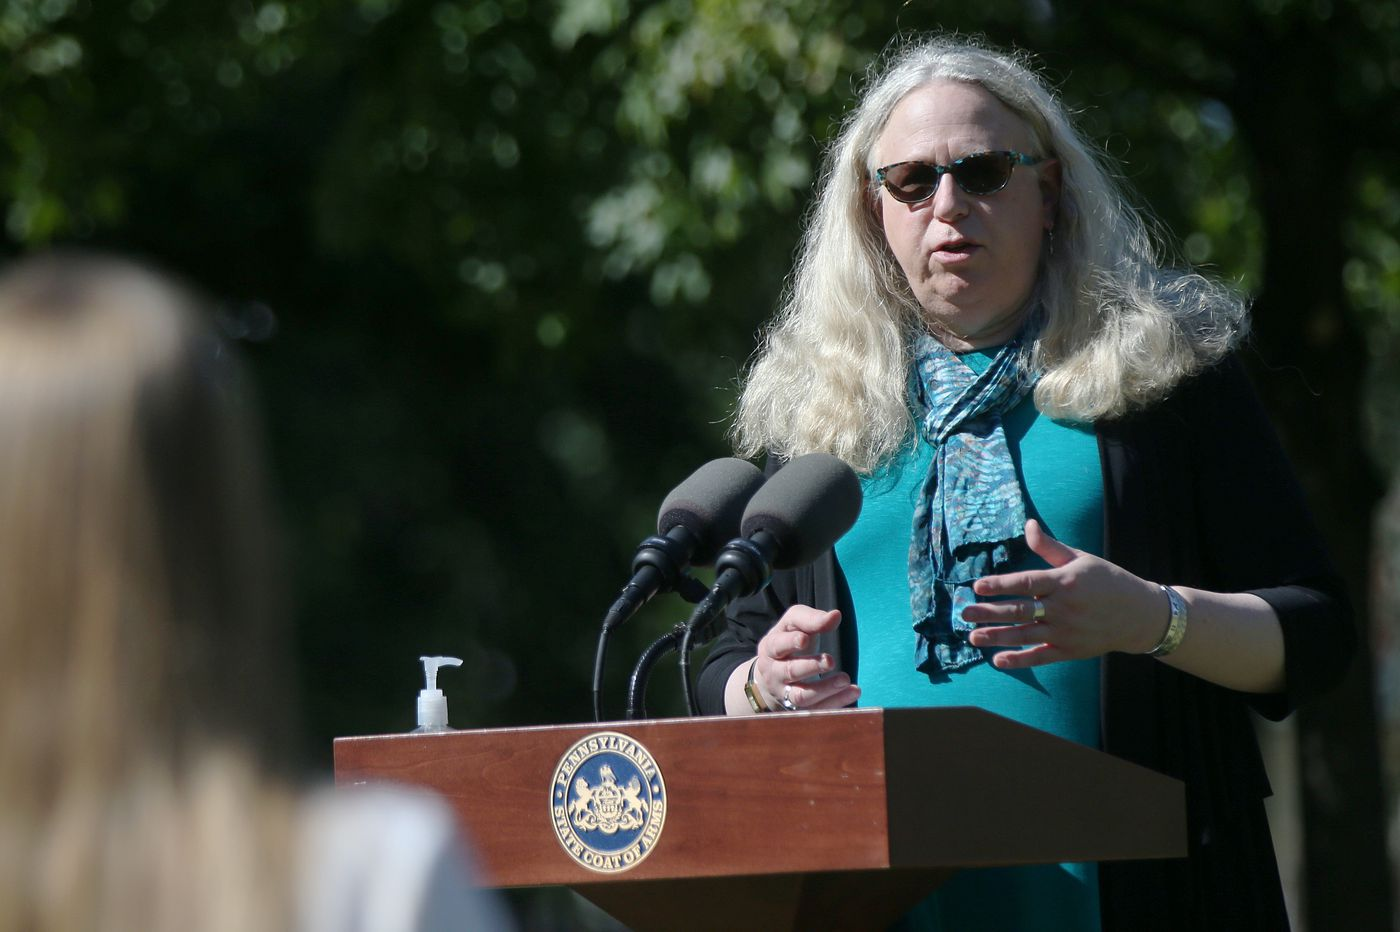 Pa. Health Secretary Rachel Levine tapped to be Biden's assistant secretary for health